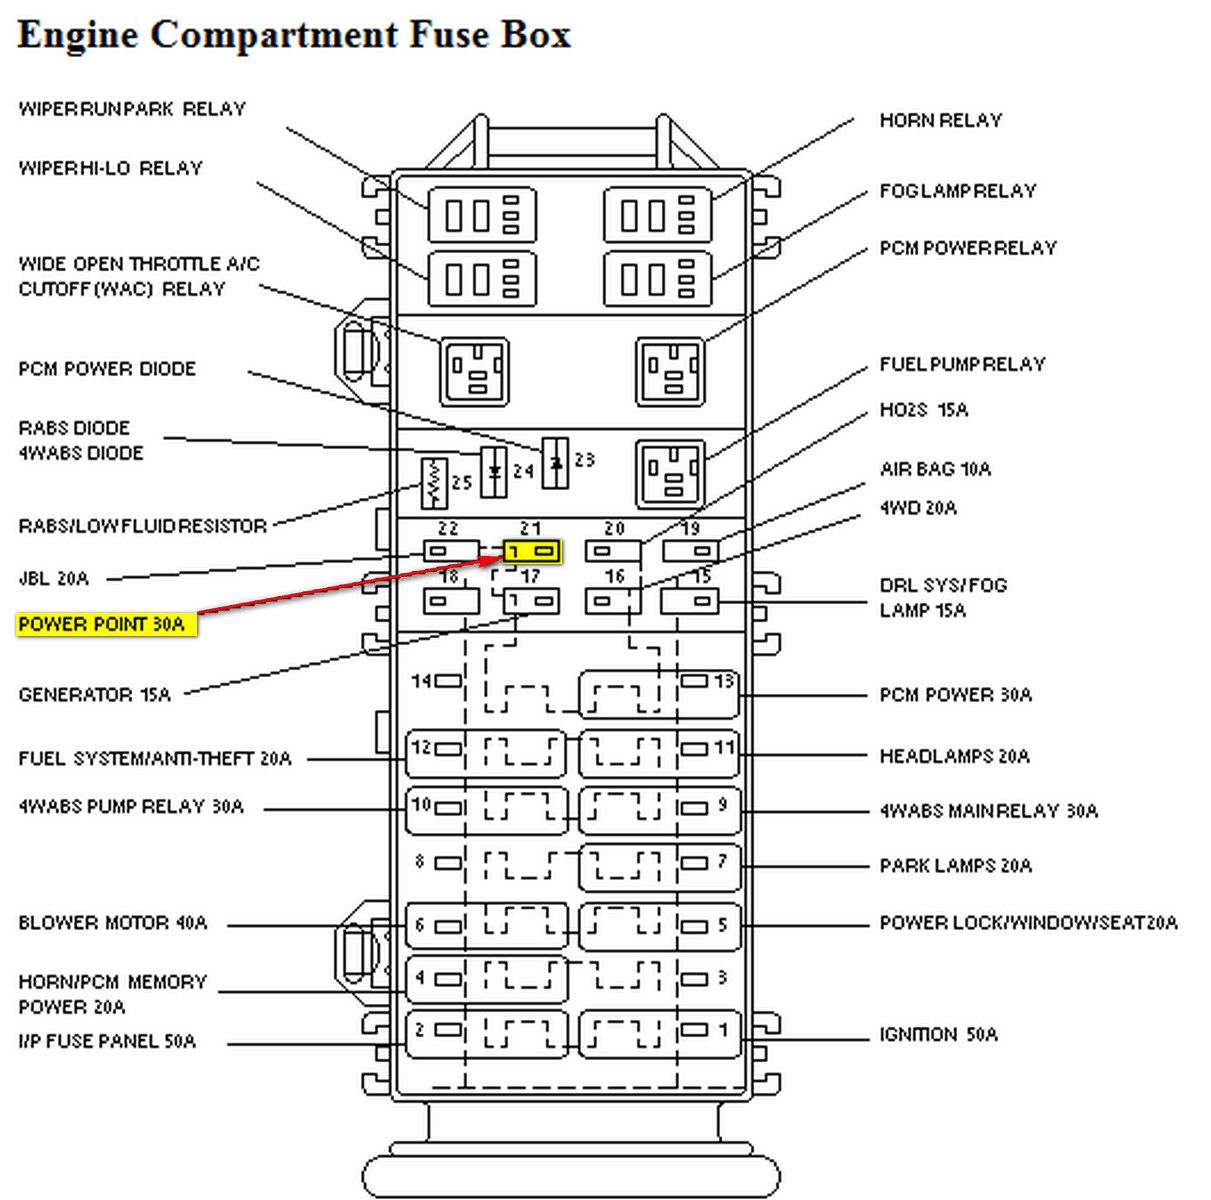 1997 Explorer Fuse Panel Diagram - Wiring Diagram Can on 1998 ranger wheels, 1998 ranger fuel system, 2004 ford ranger fuse diagram, 1998 ranger frame diagram, 1998 ranger engine, 2004 ford ranger relay diagram, 2004 ford ranger charging diagram, 1996 ranger wiring diagram, 1998 ranger ford, ford ranger electrical diagram,